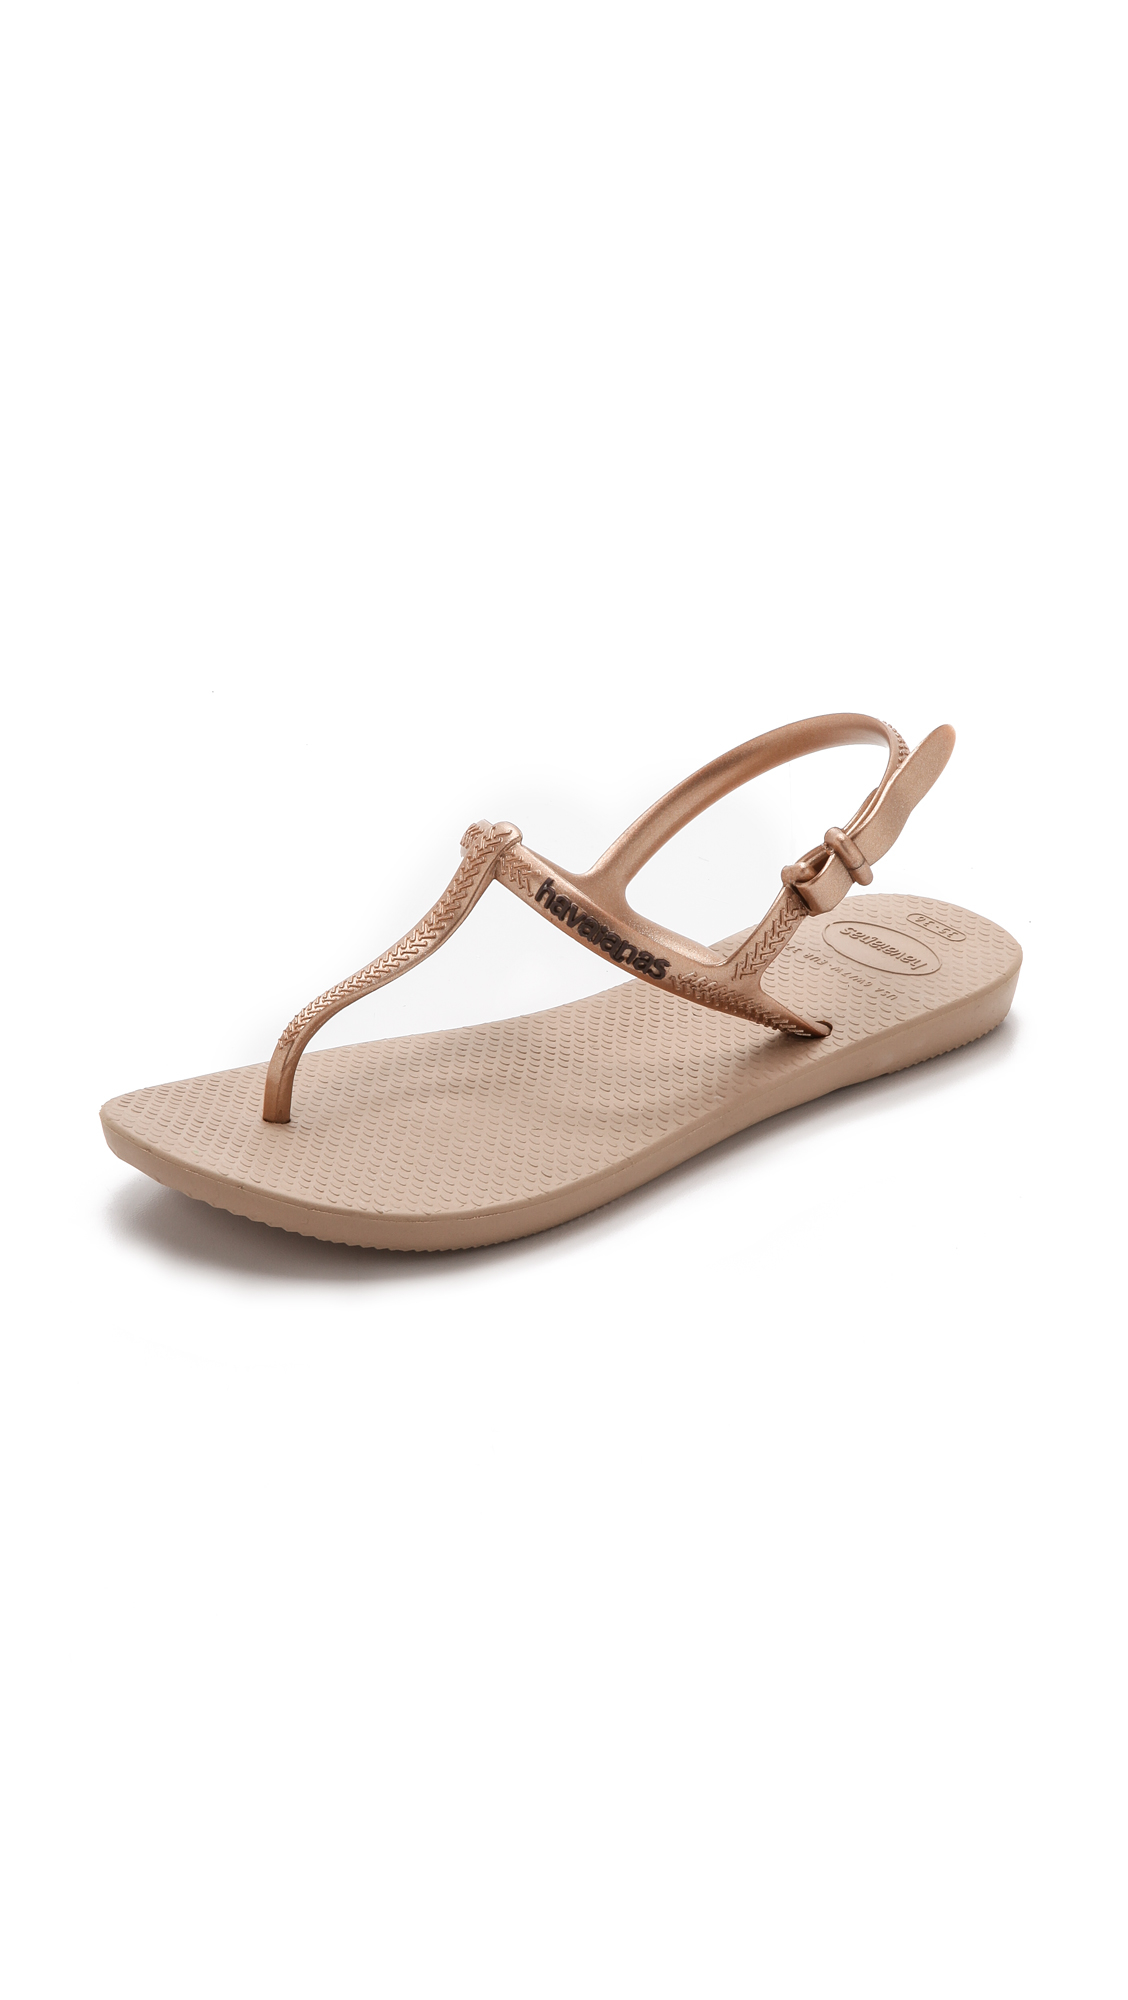 1a18bb88f1dc Lyst - Havaianas Freedom T-strap Sandals - Rose Gold in Pink